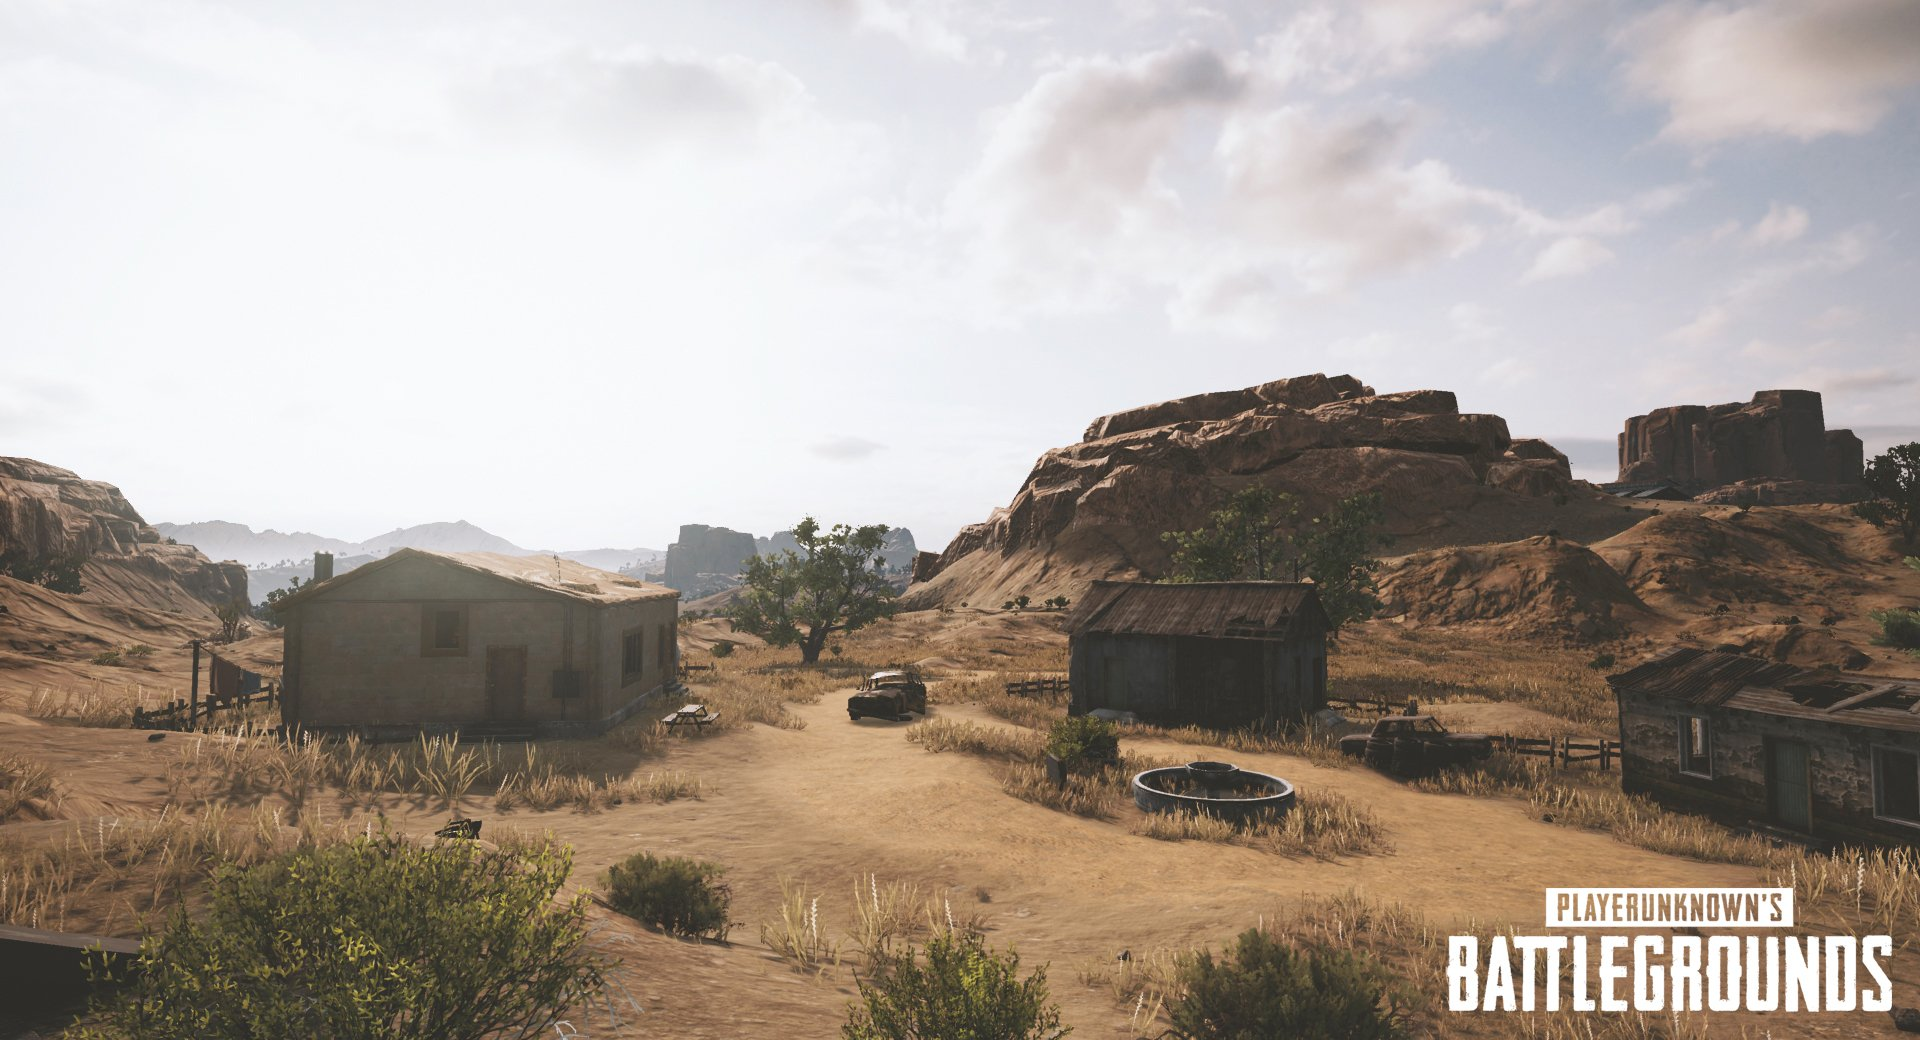 PUBG Developer Reveals Upcoming Desert Map with New Screenshots